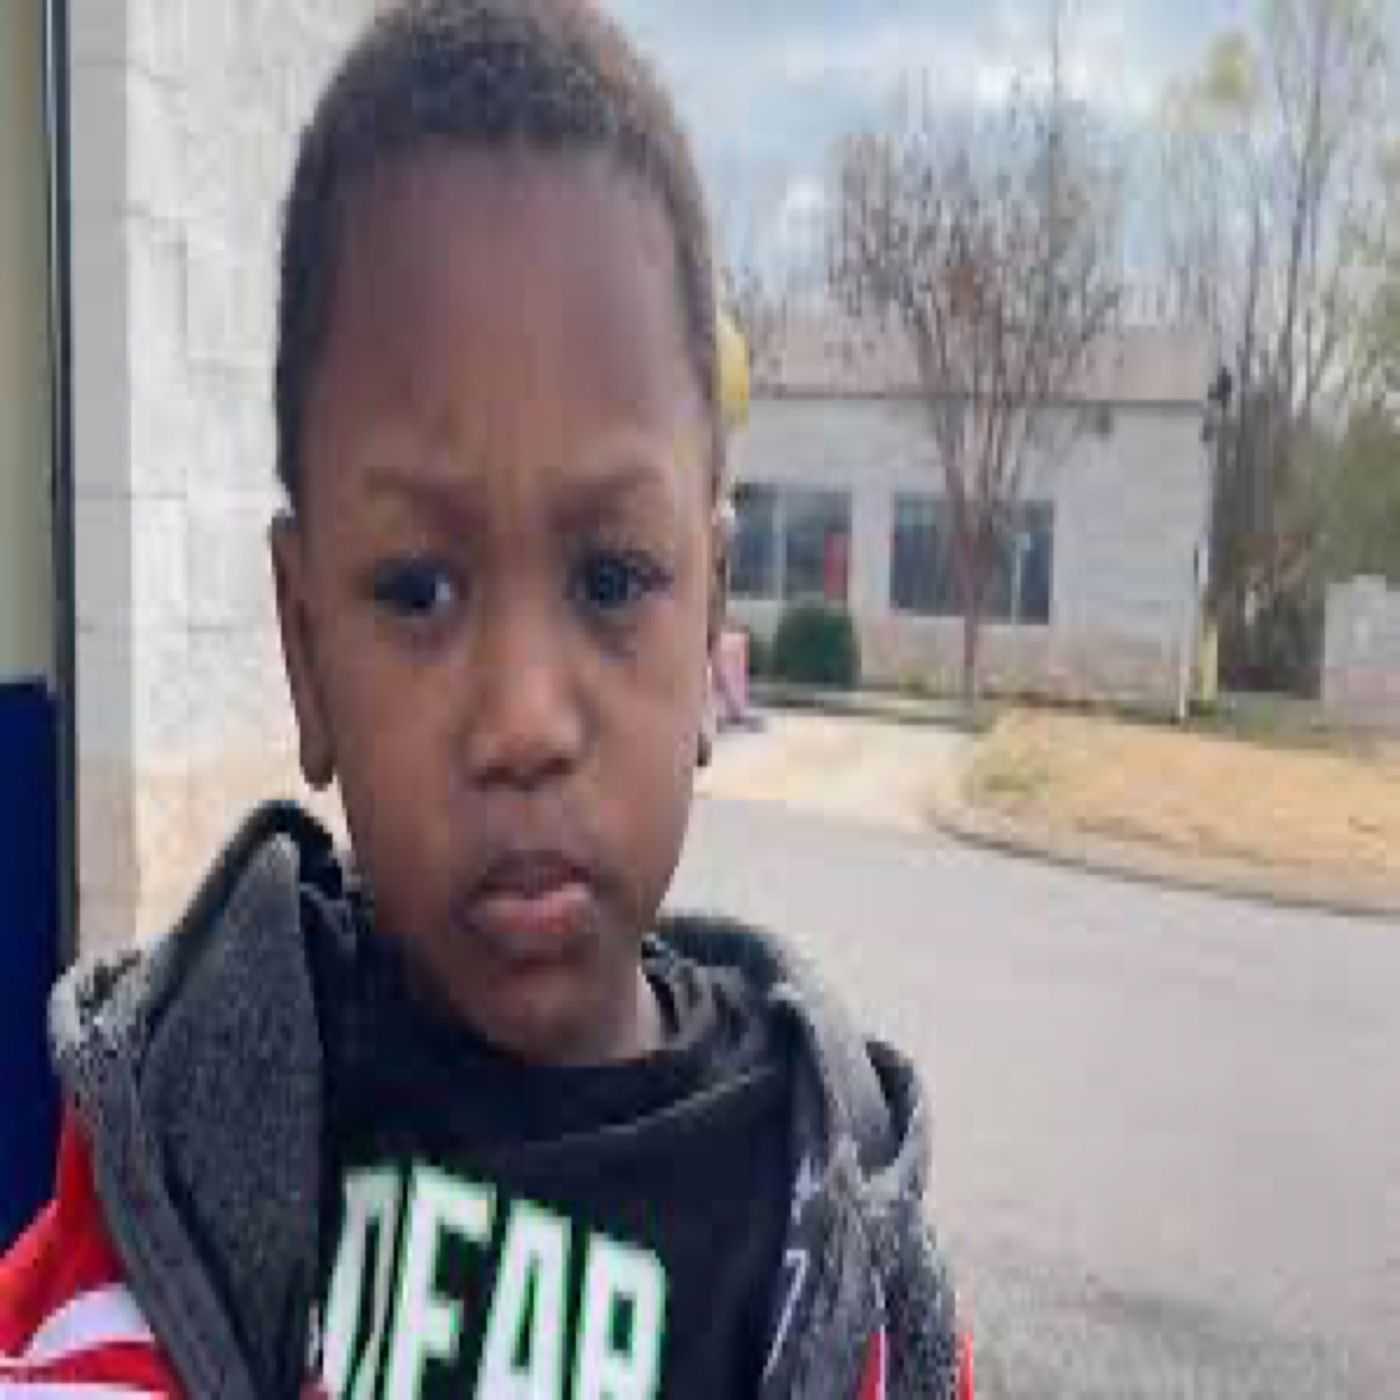 Boy Abandoned In Mississippi, Side Affects From That 1-9 And More